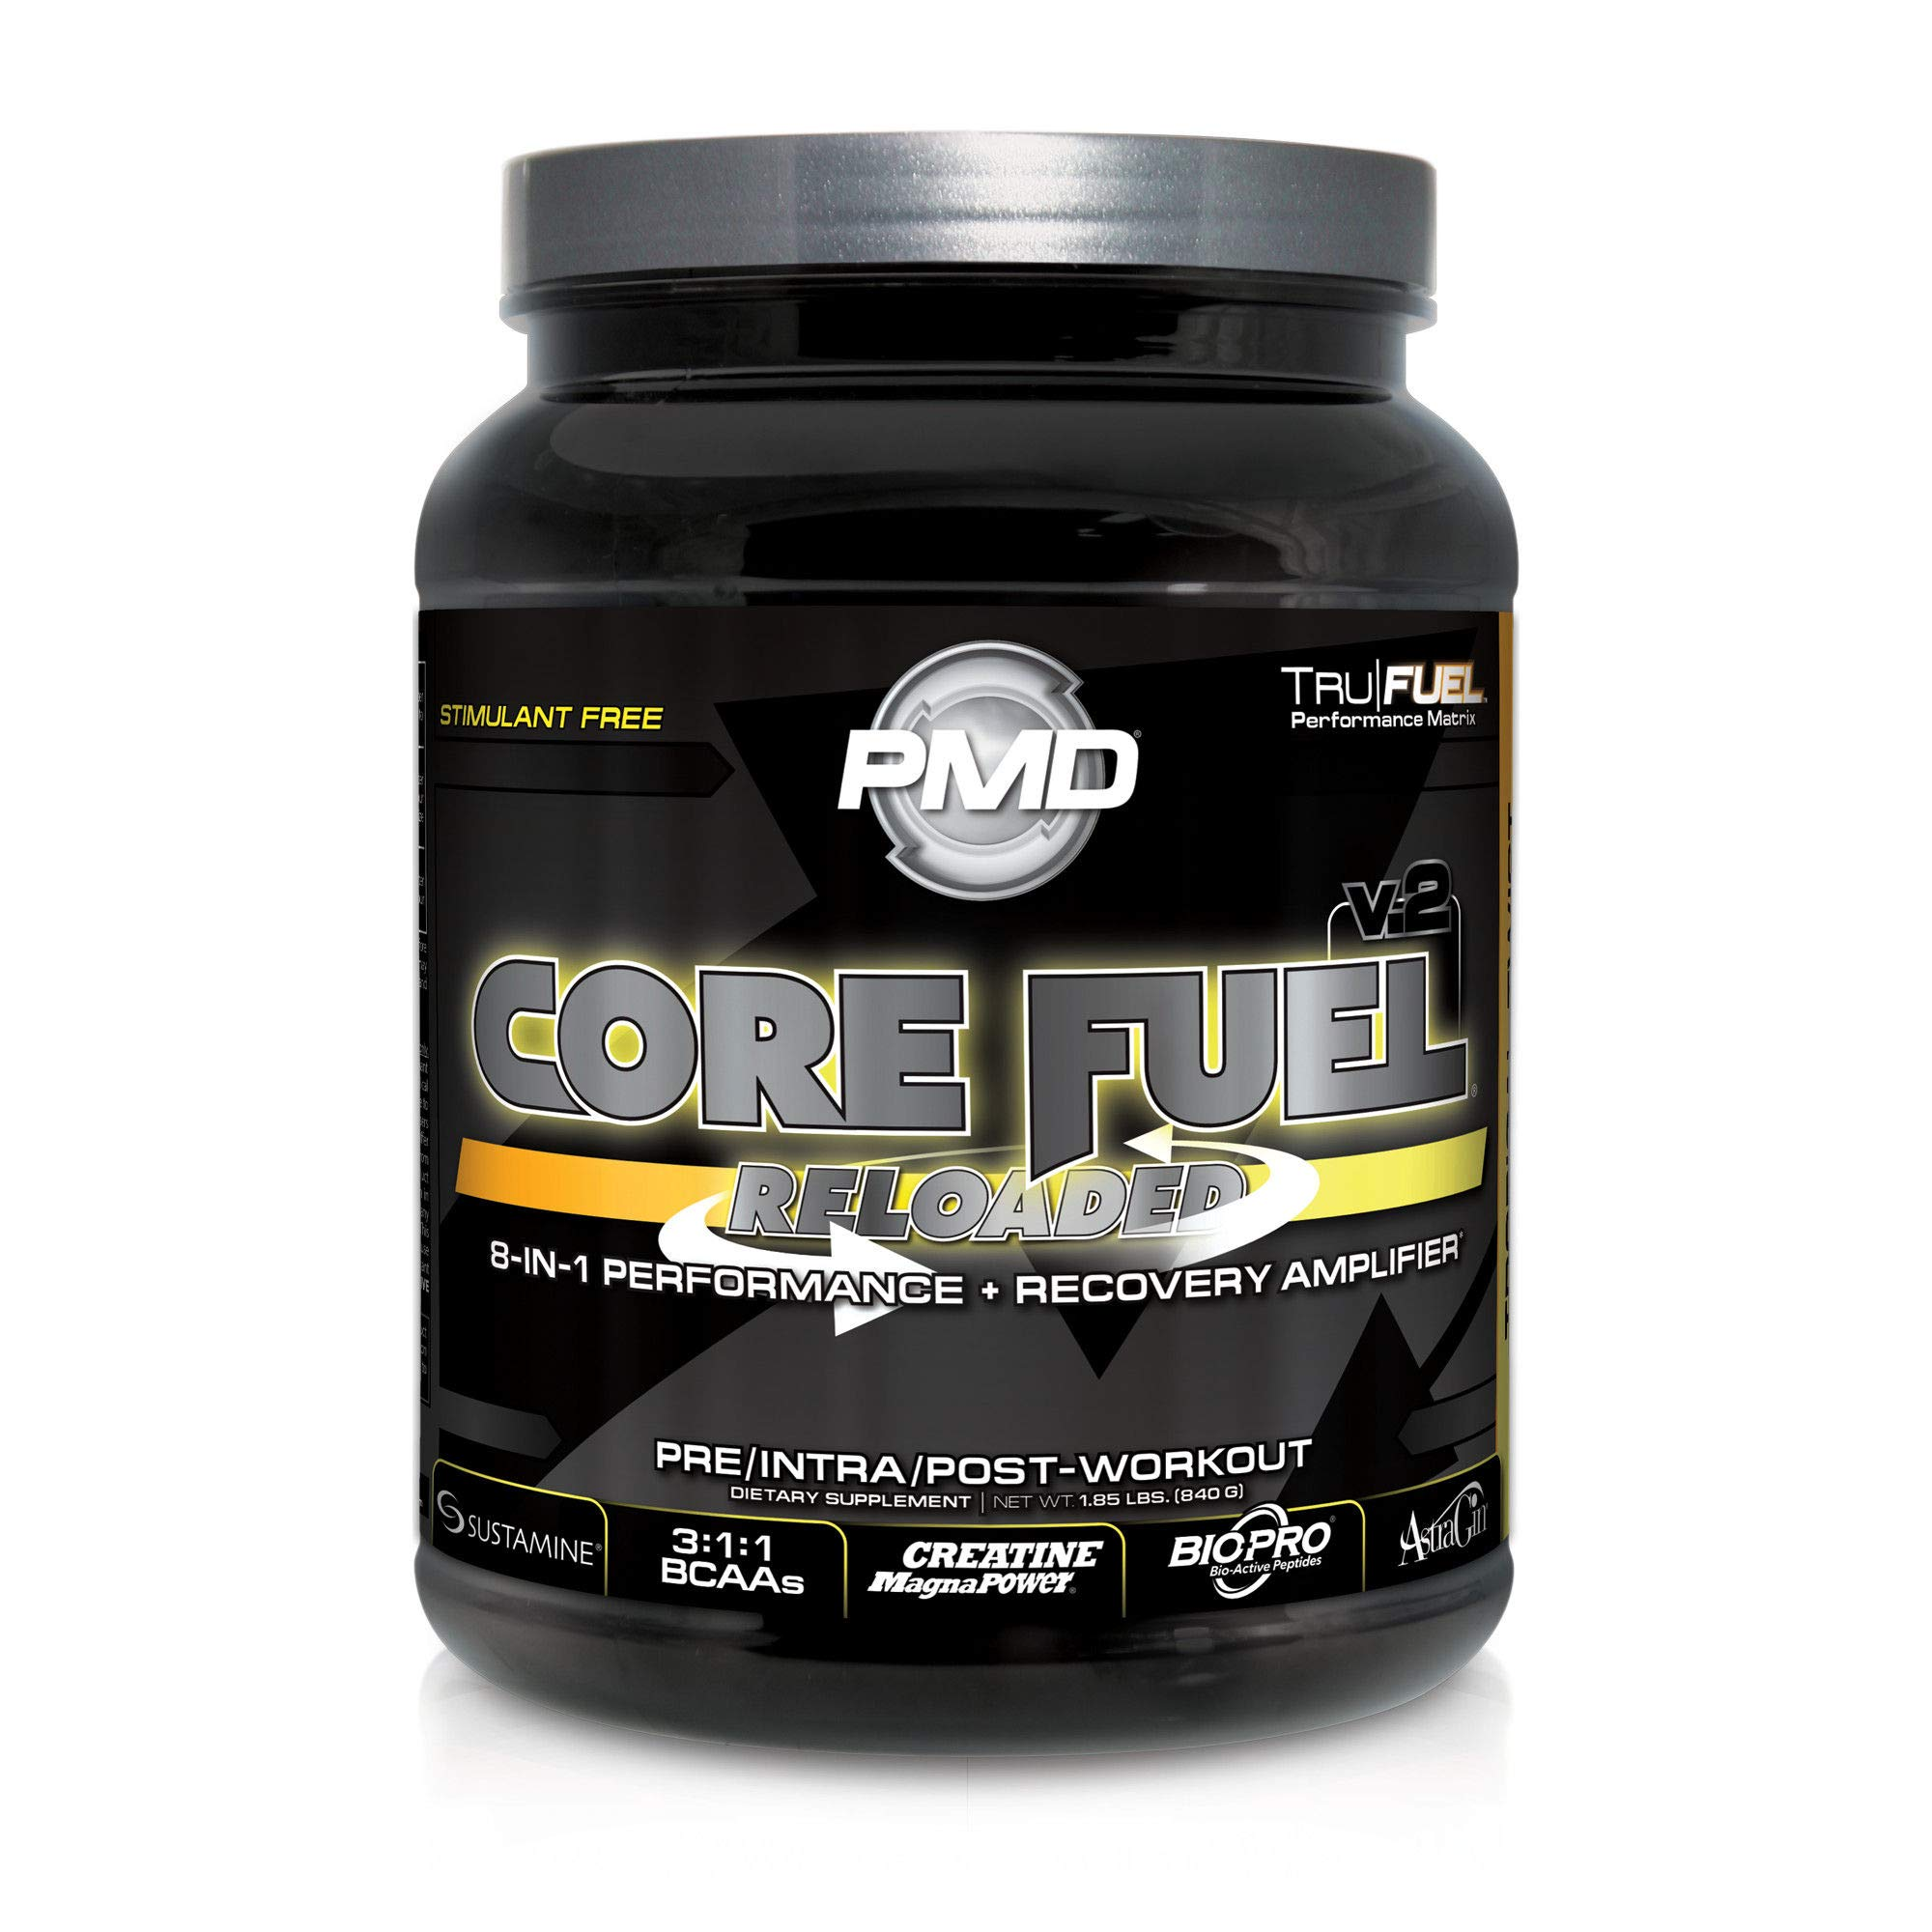 PMD Sports Core Fuel Reloaded - Creatine, Glutamine, BCAAs, Endurance And Complex Carbohydrate - 8-in-1 Premium Pre Intra And Post-Workout Performance And Recovery Drink - Tropical Twist - 20 Servings